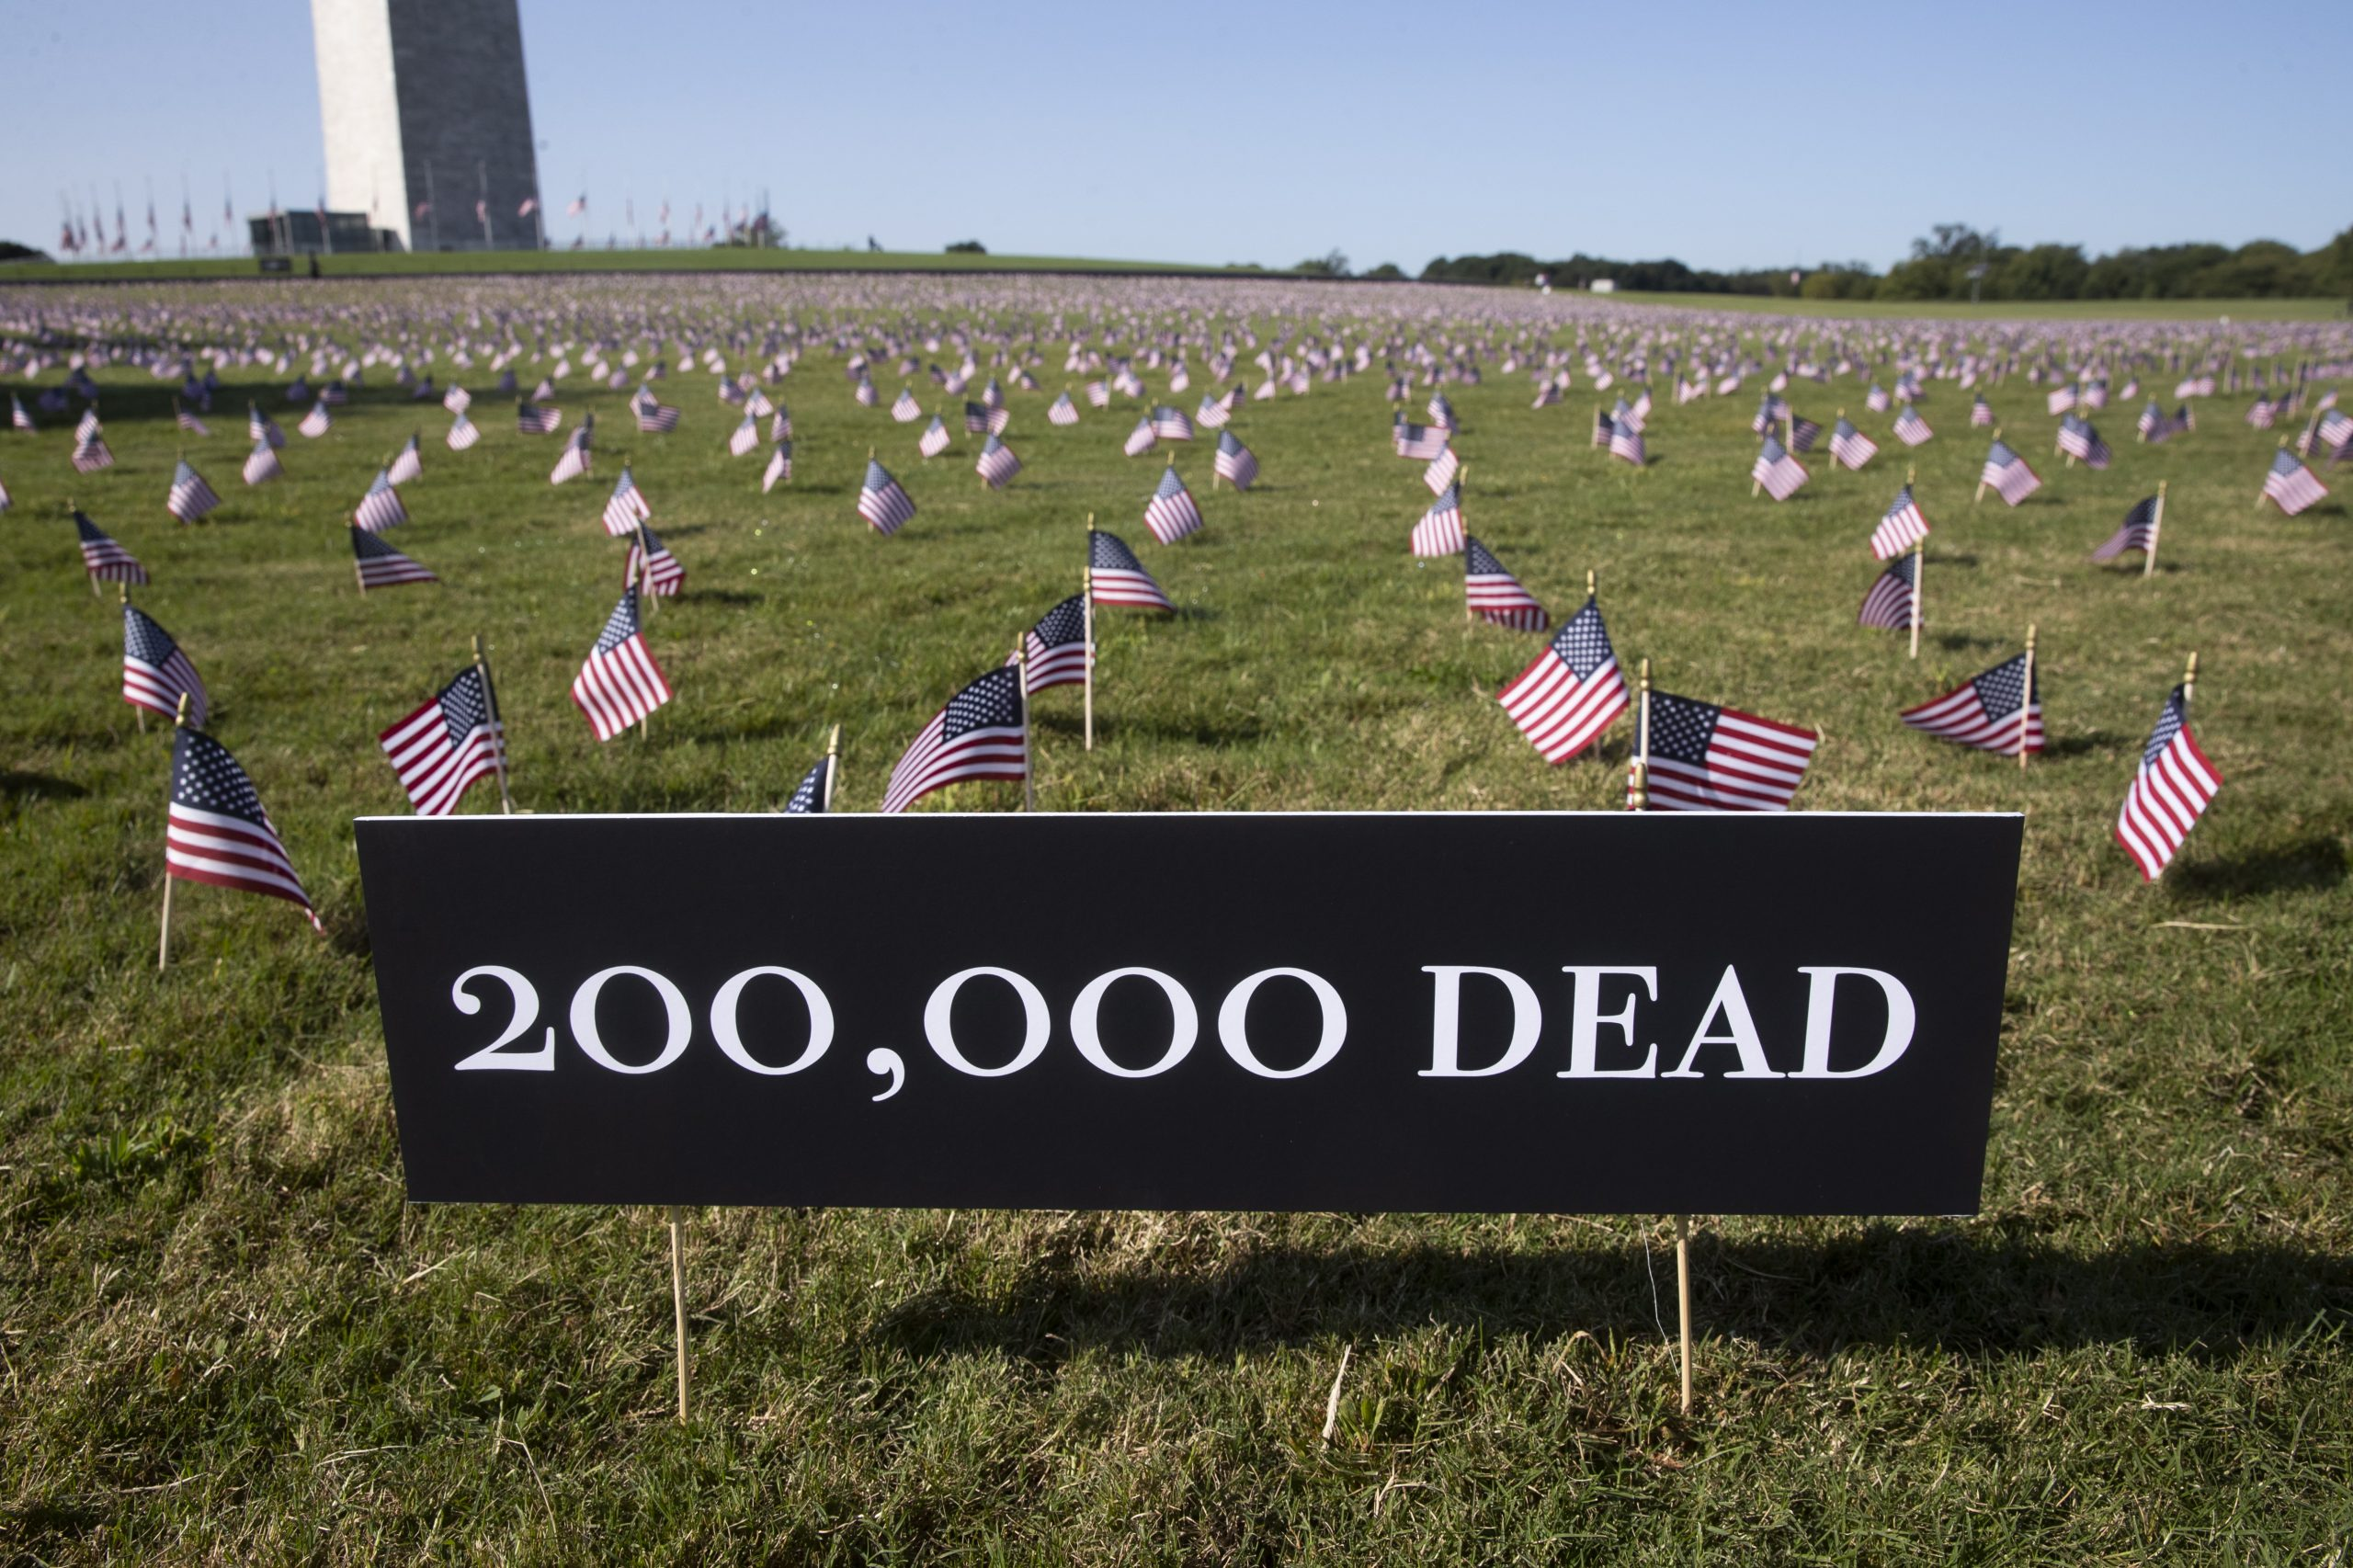 'Sobering and unfathomable': COVID-19 death toll hits 200,000 in U.S.